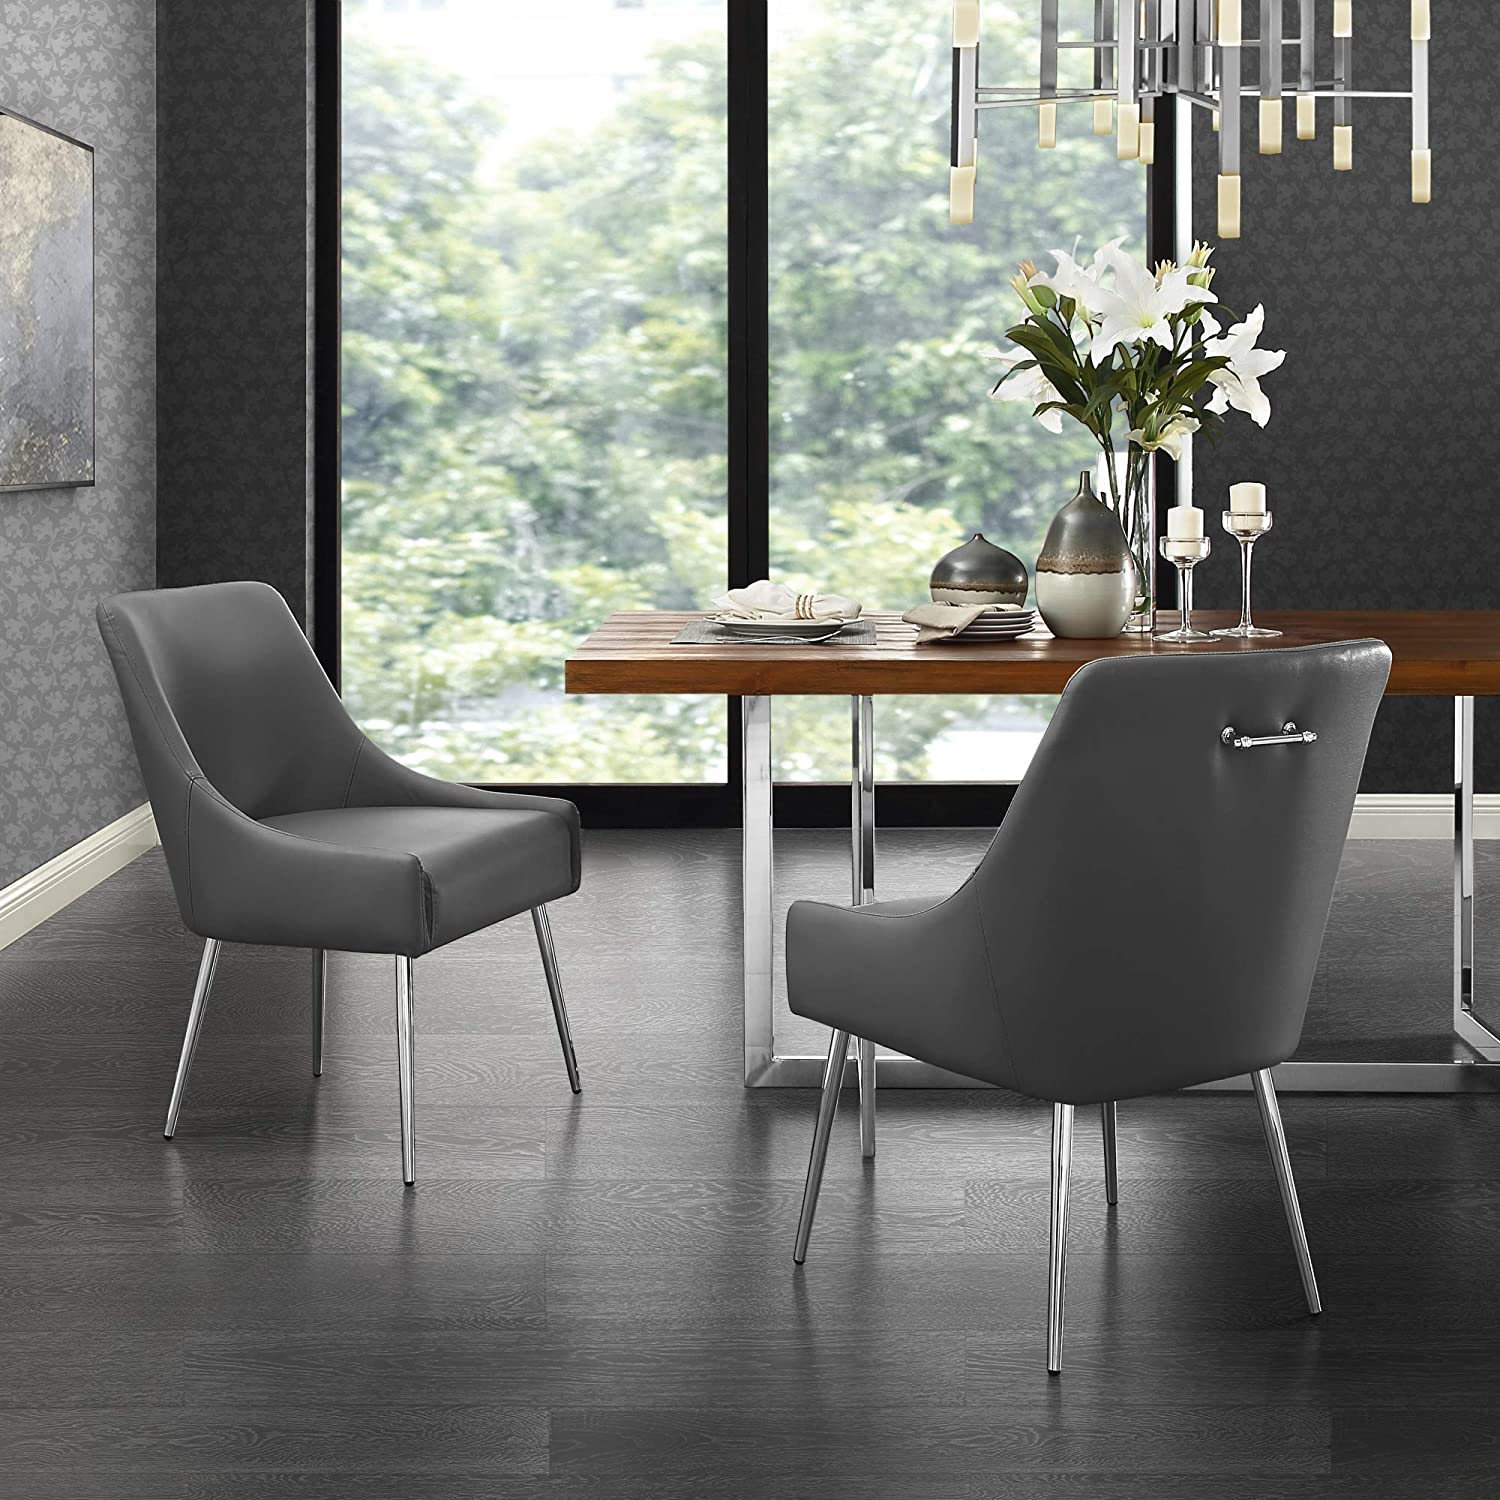 InspiredHome Grey Leather Dining Chair - Design: Christine | Armless | Set of 2 | Knob Handle | Stainless Steel Legs